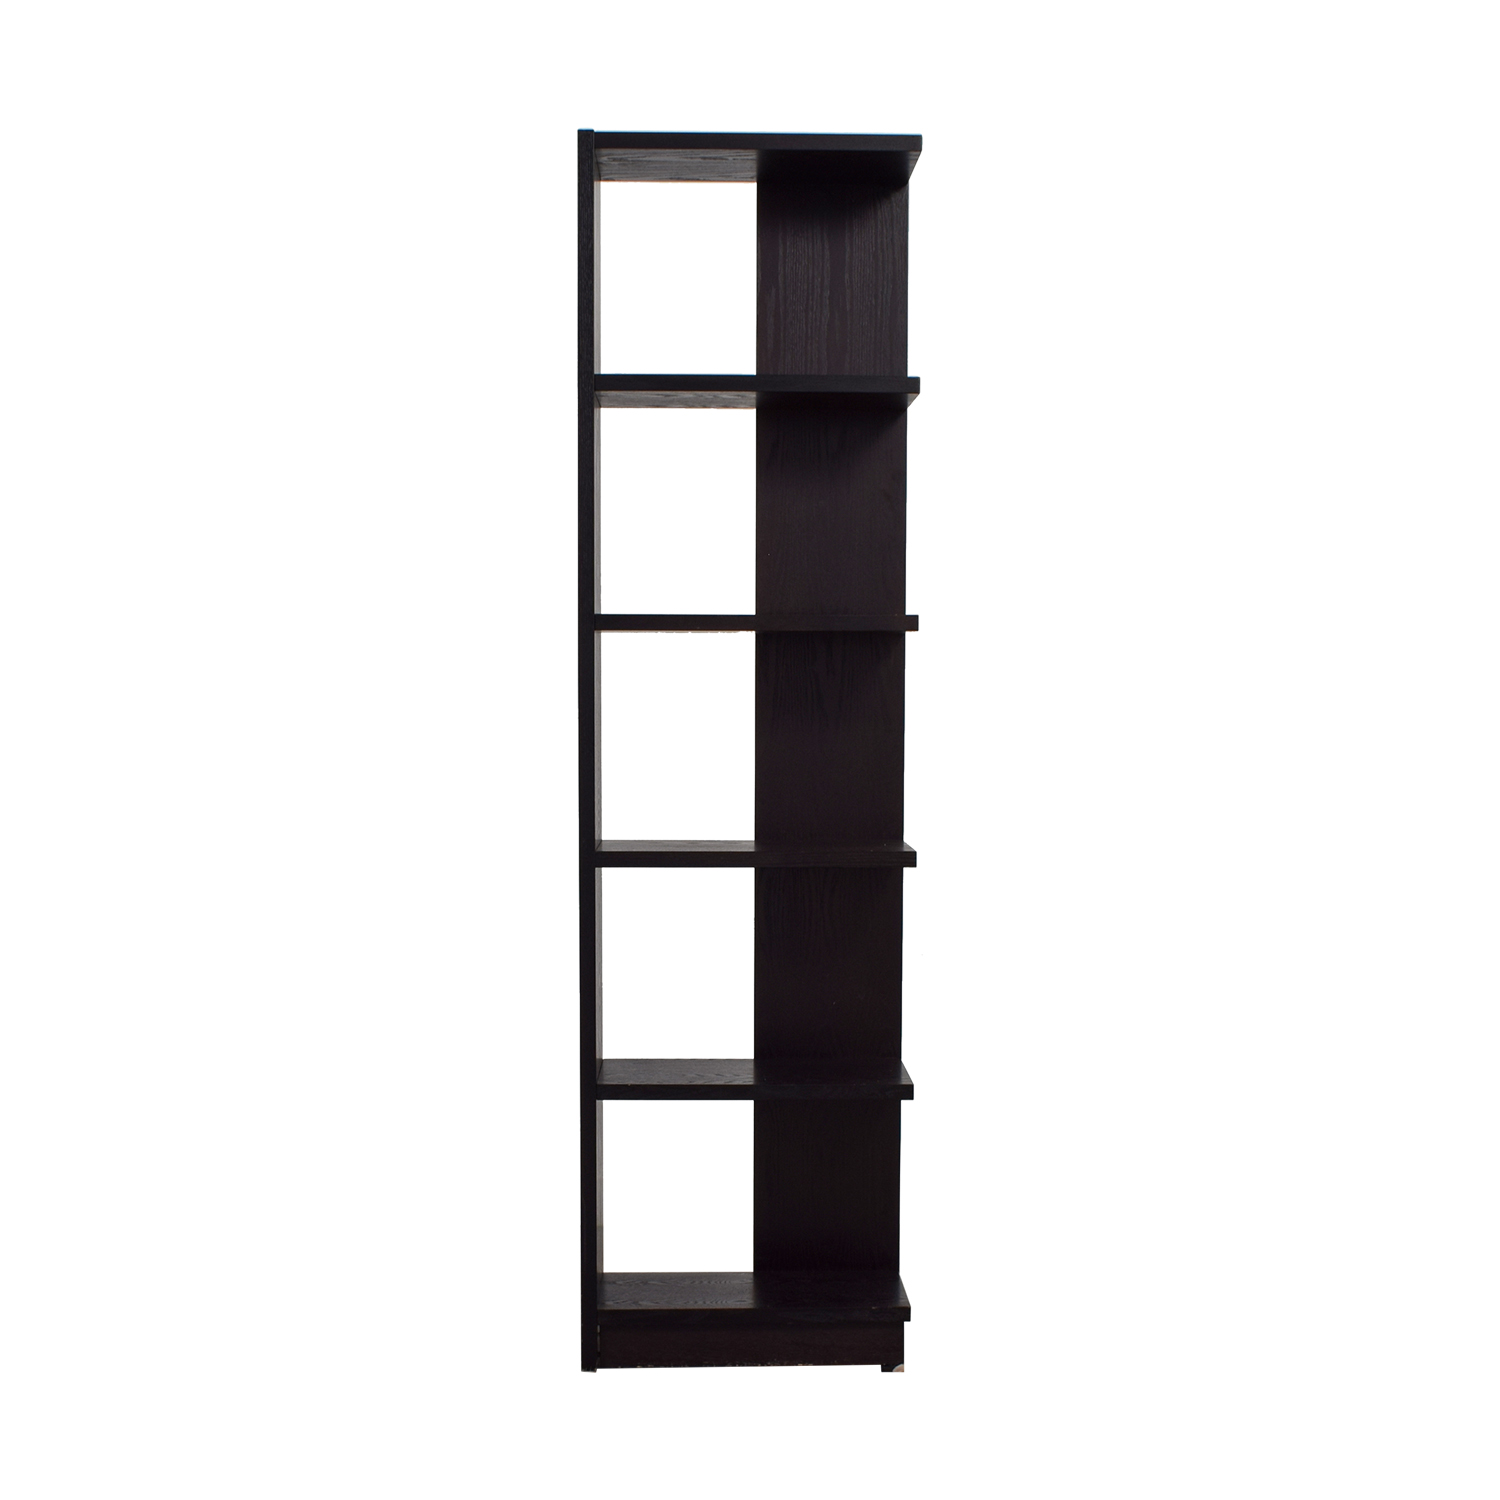 Crate & Barrel Crate & Barrel Asymmetric Bookcase used